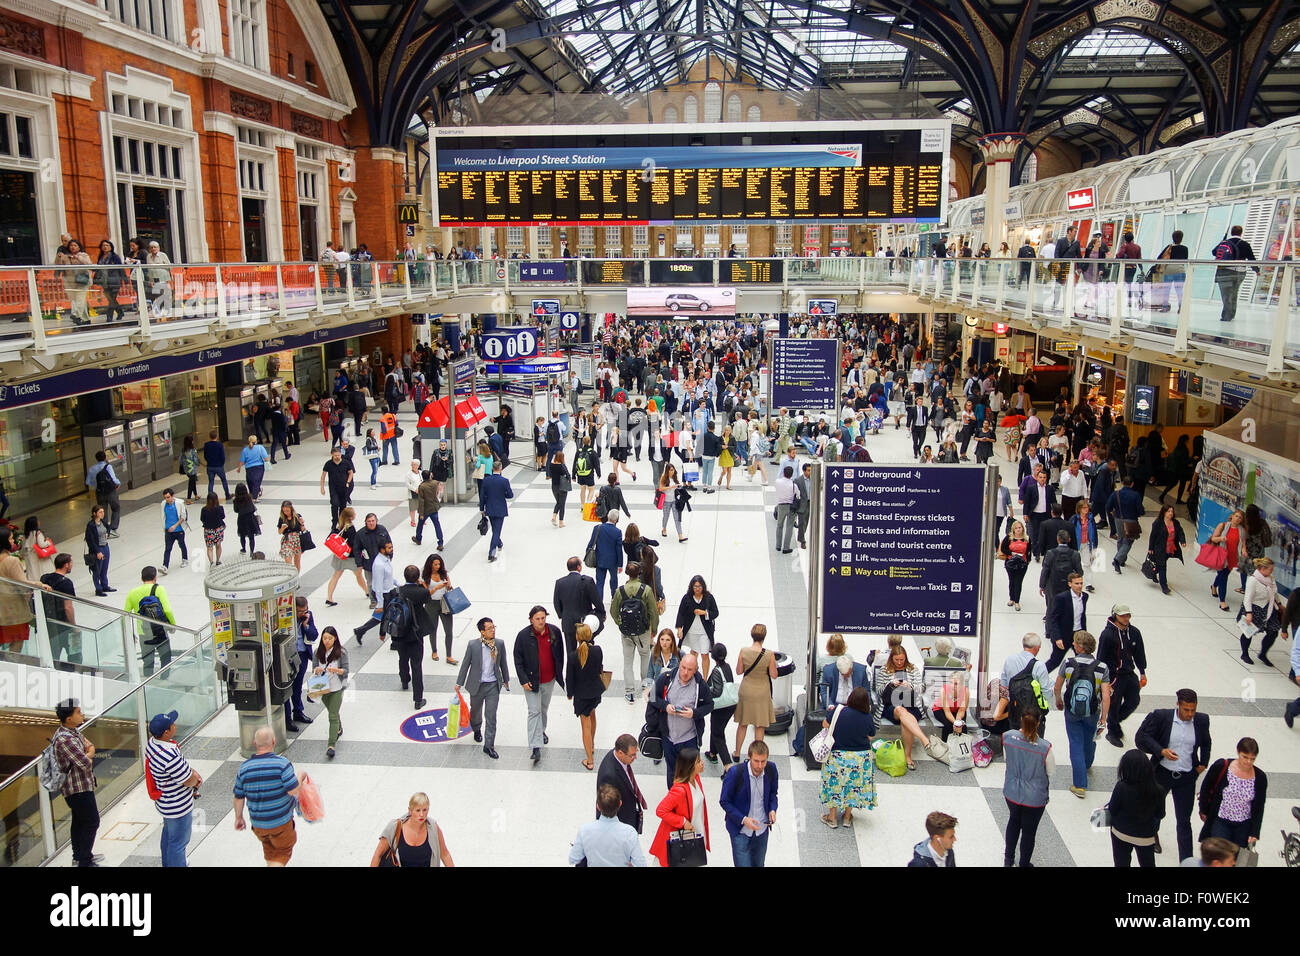 Liverpool Street Station during a busy rush hour. - Stock Image